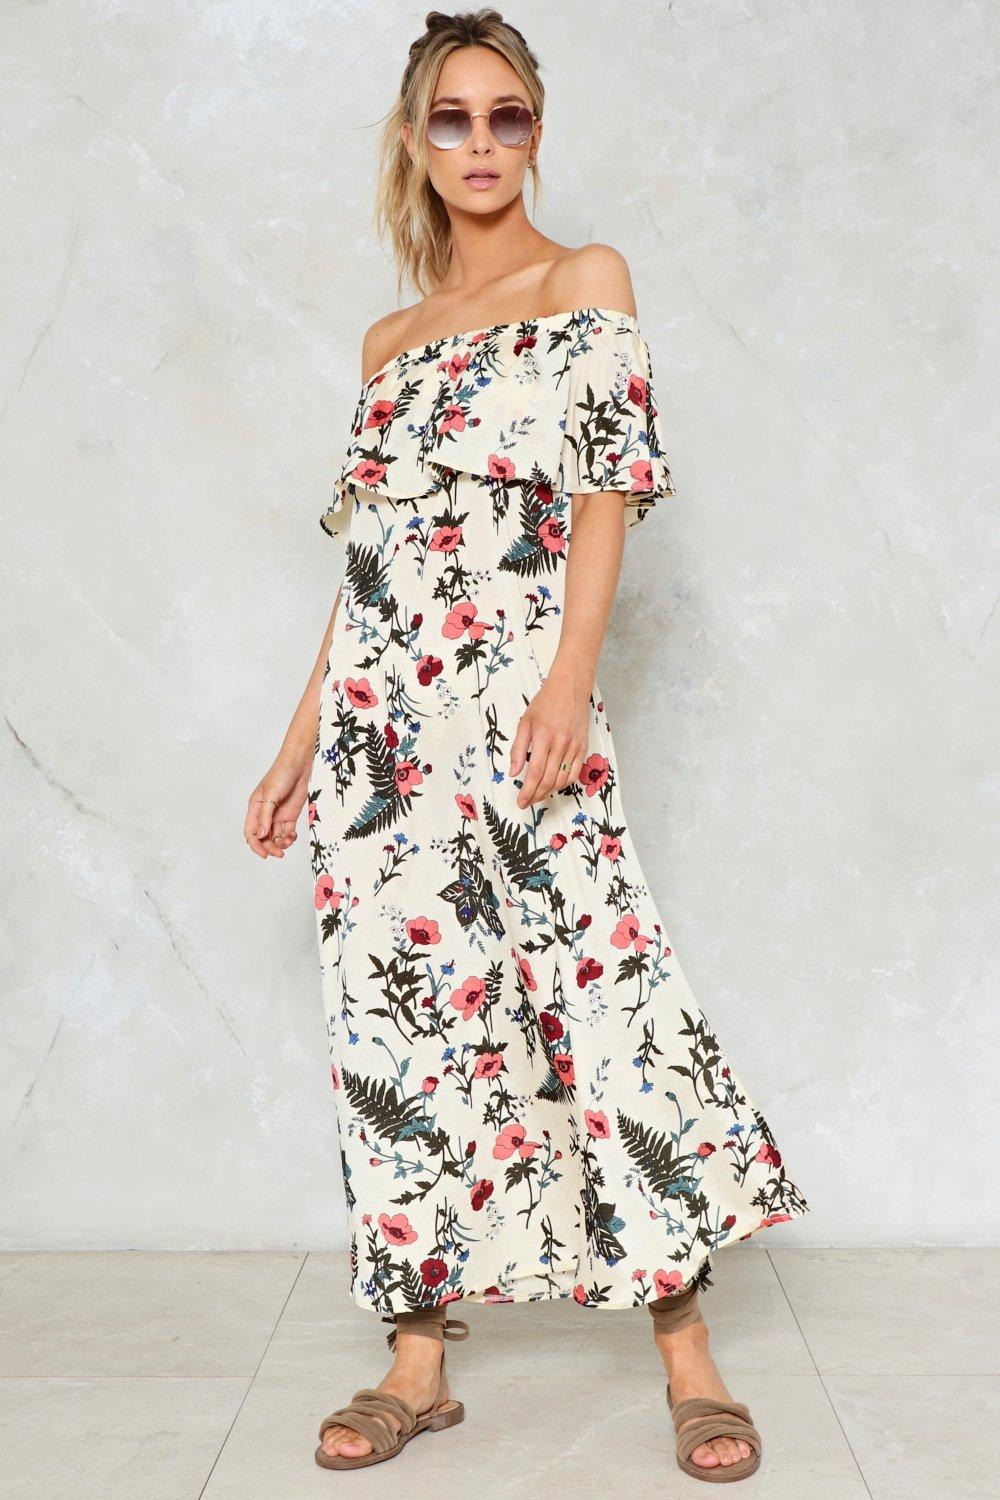 02f3cc49c67a3 Growing Pains Floral Maxi Dress | Shop Clothes at Nasty Gal!